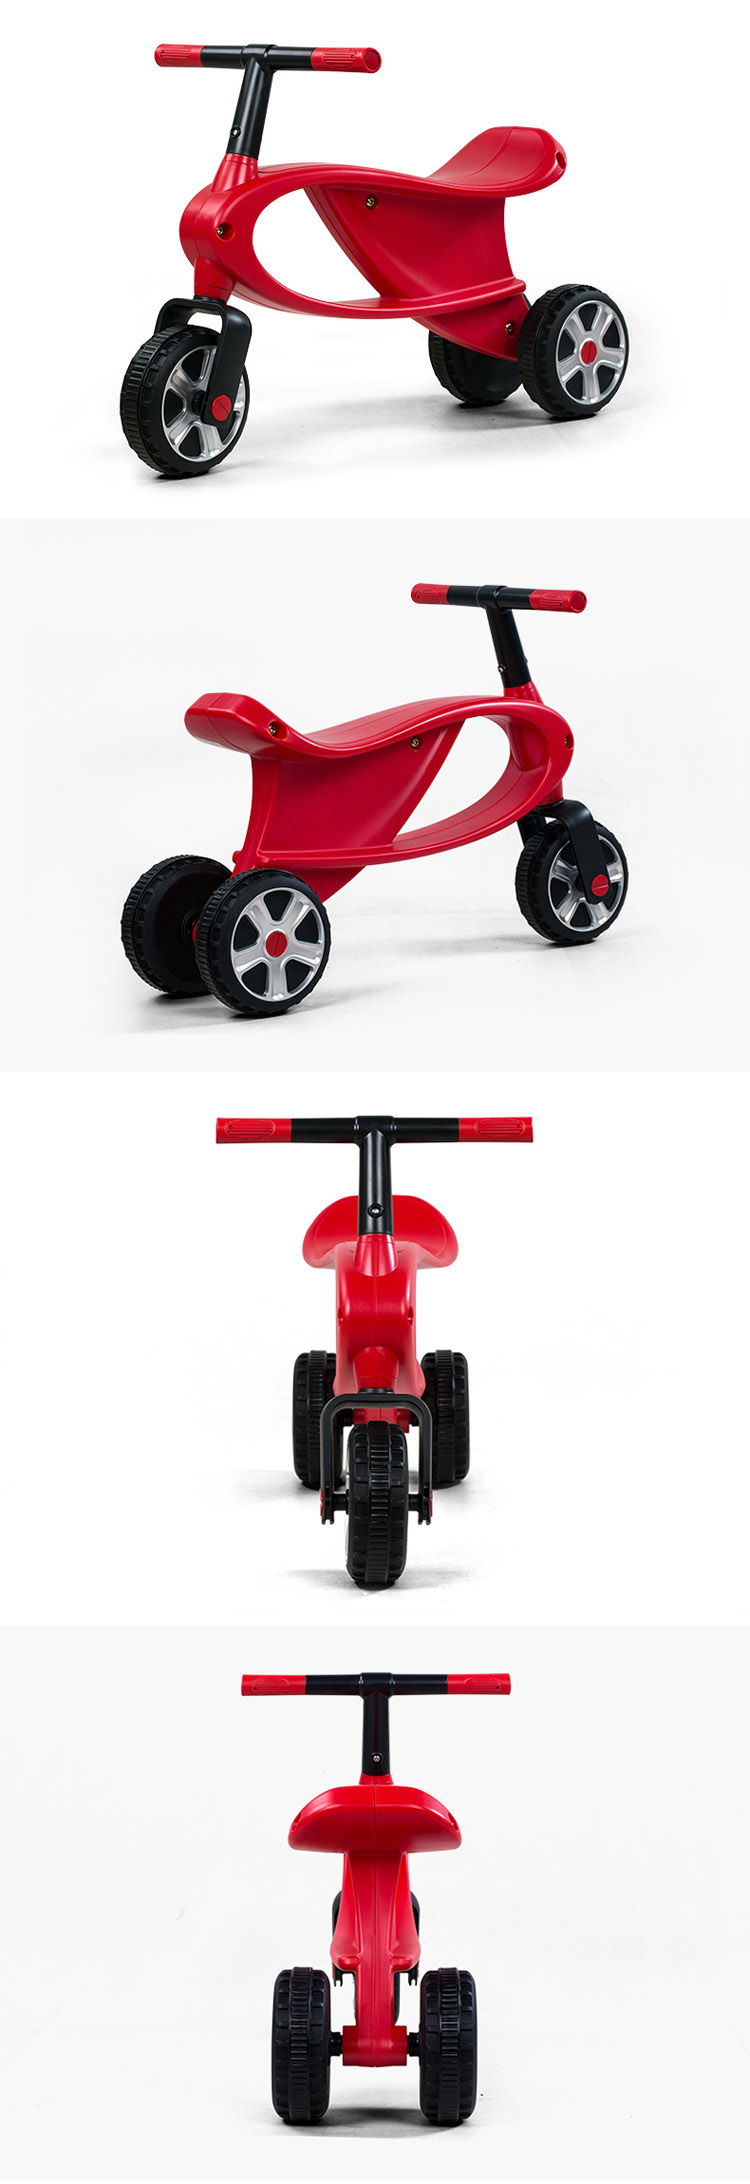 Rastar wholesale kids toy ride on toy plastic 3 wheel tricycle bike